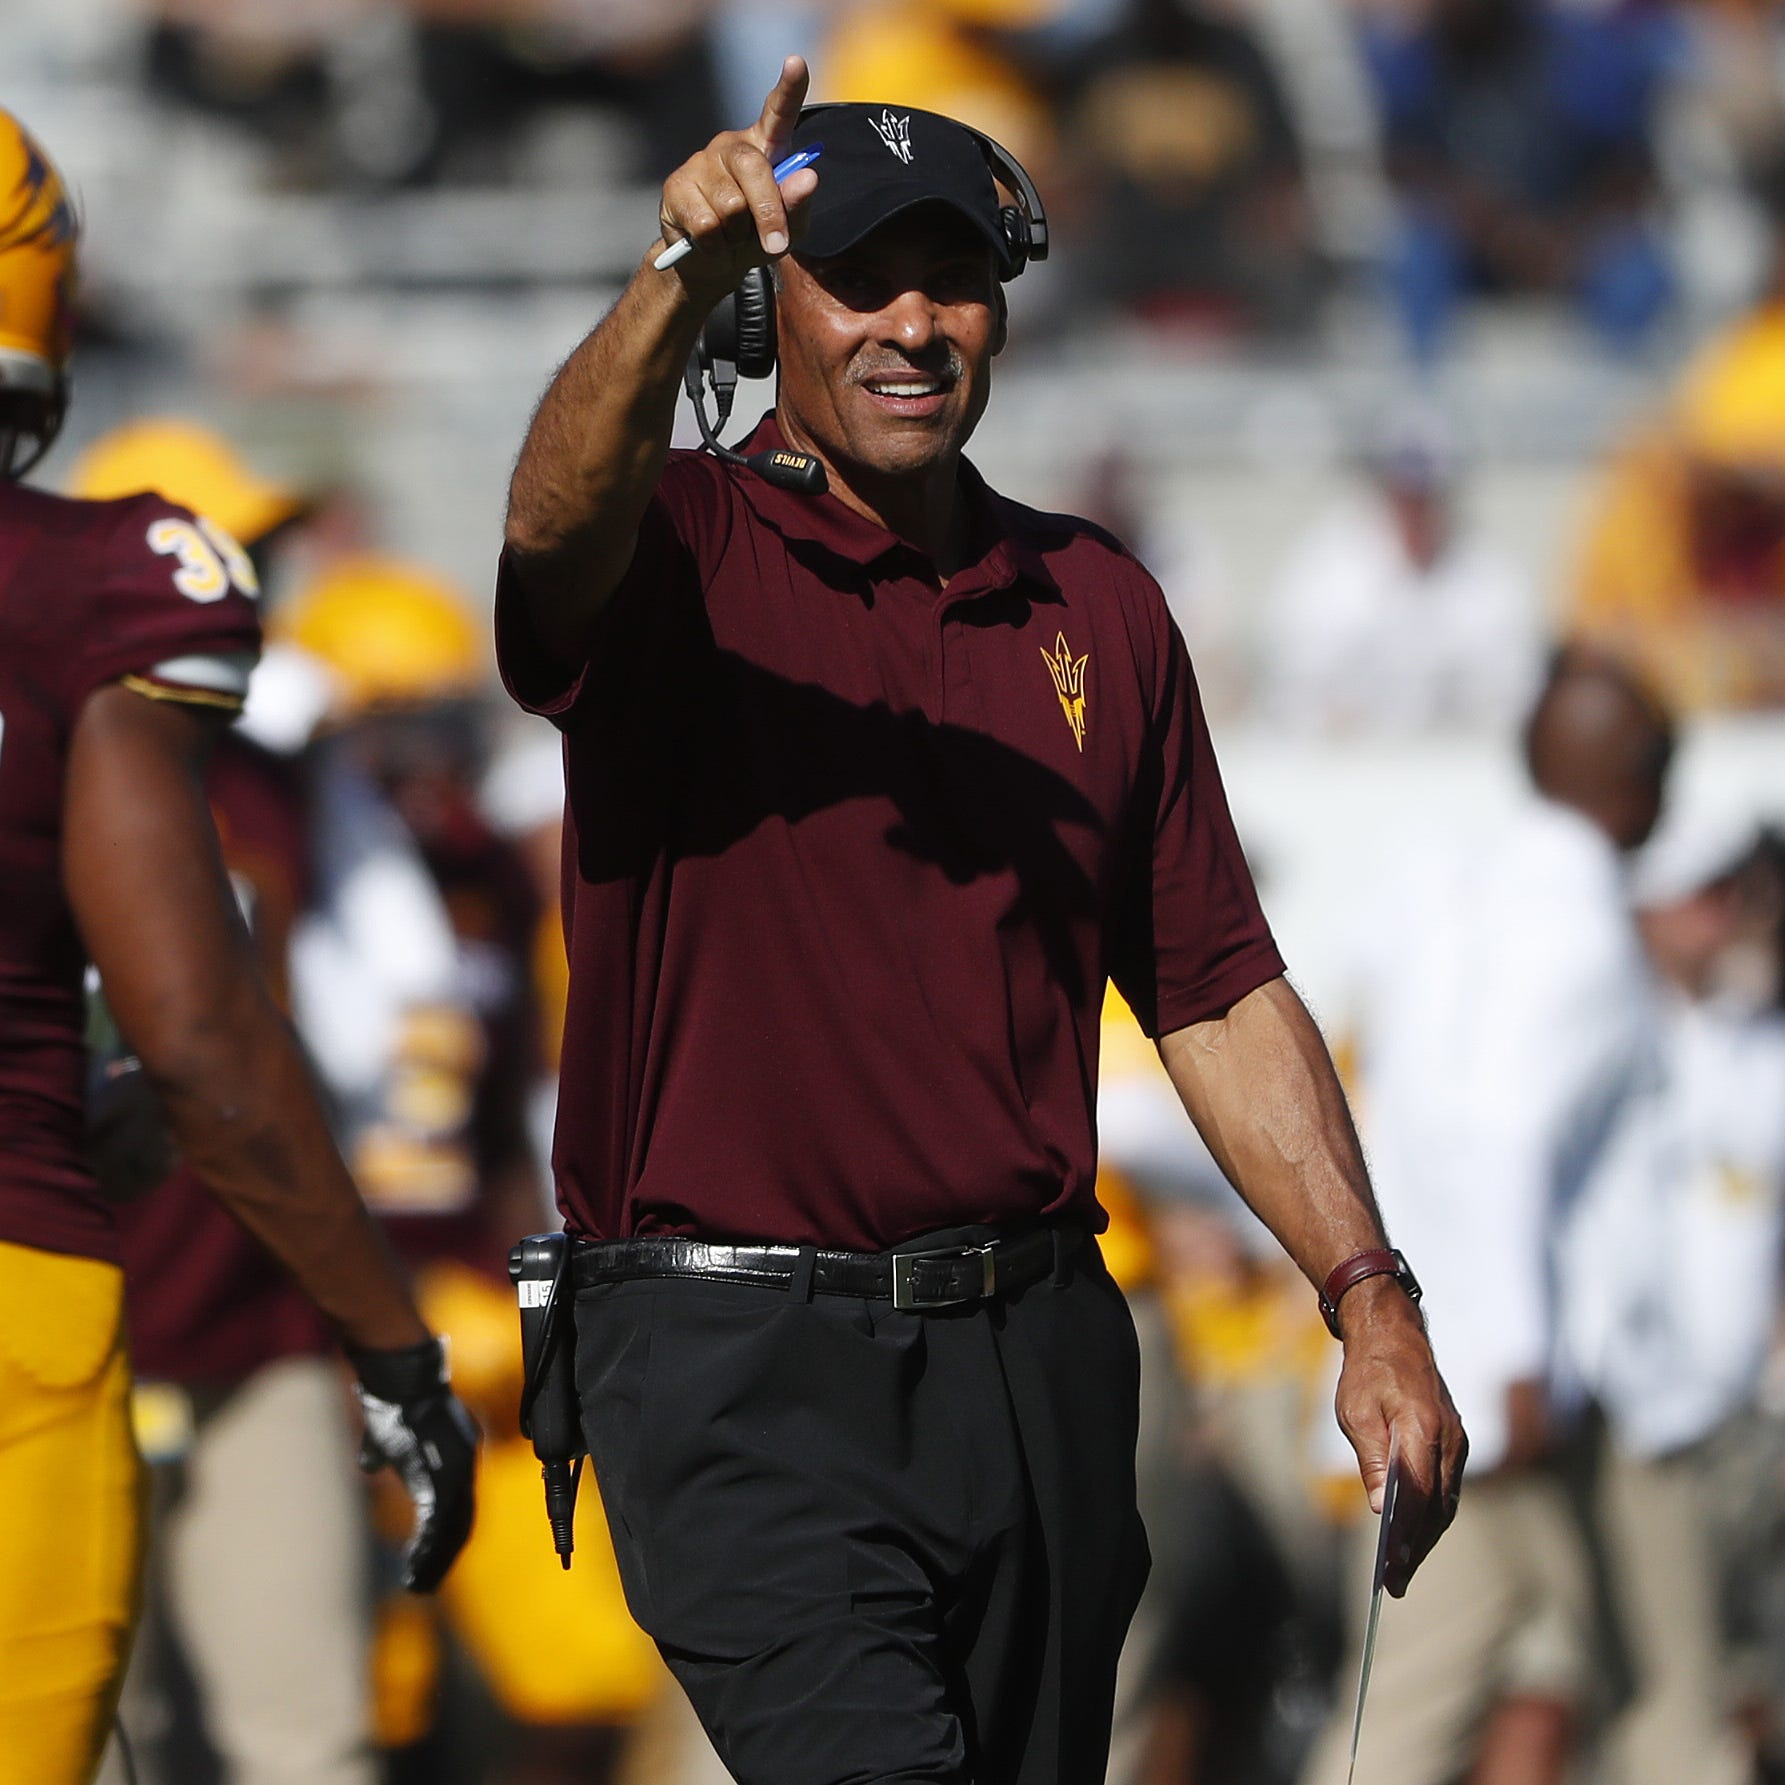 Here's how ASU could clinch the Pac-12 South on Saturday